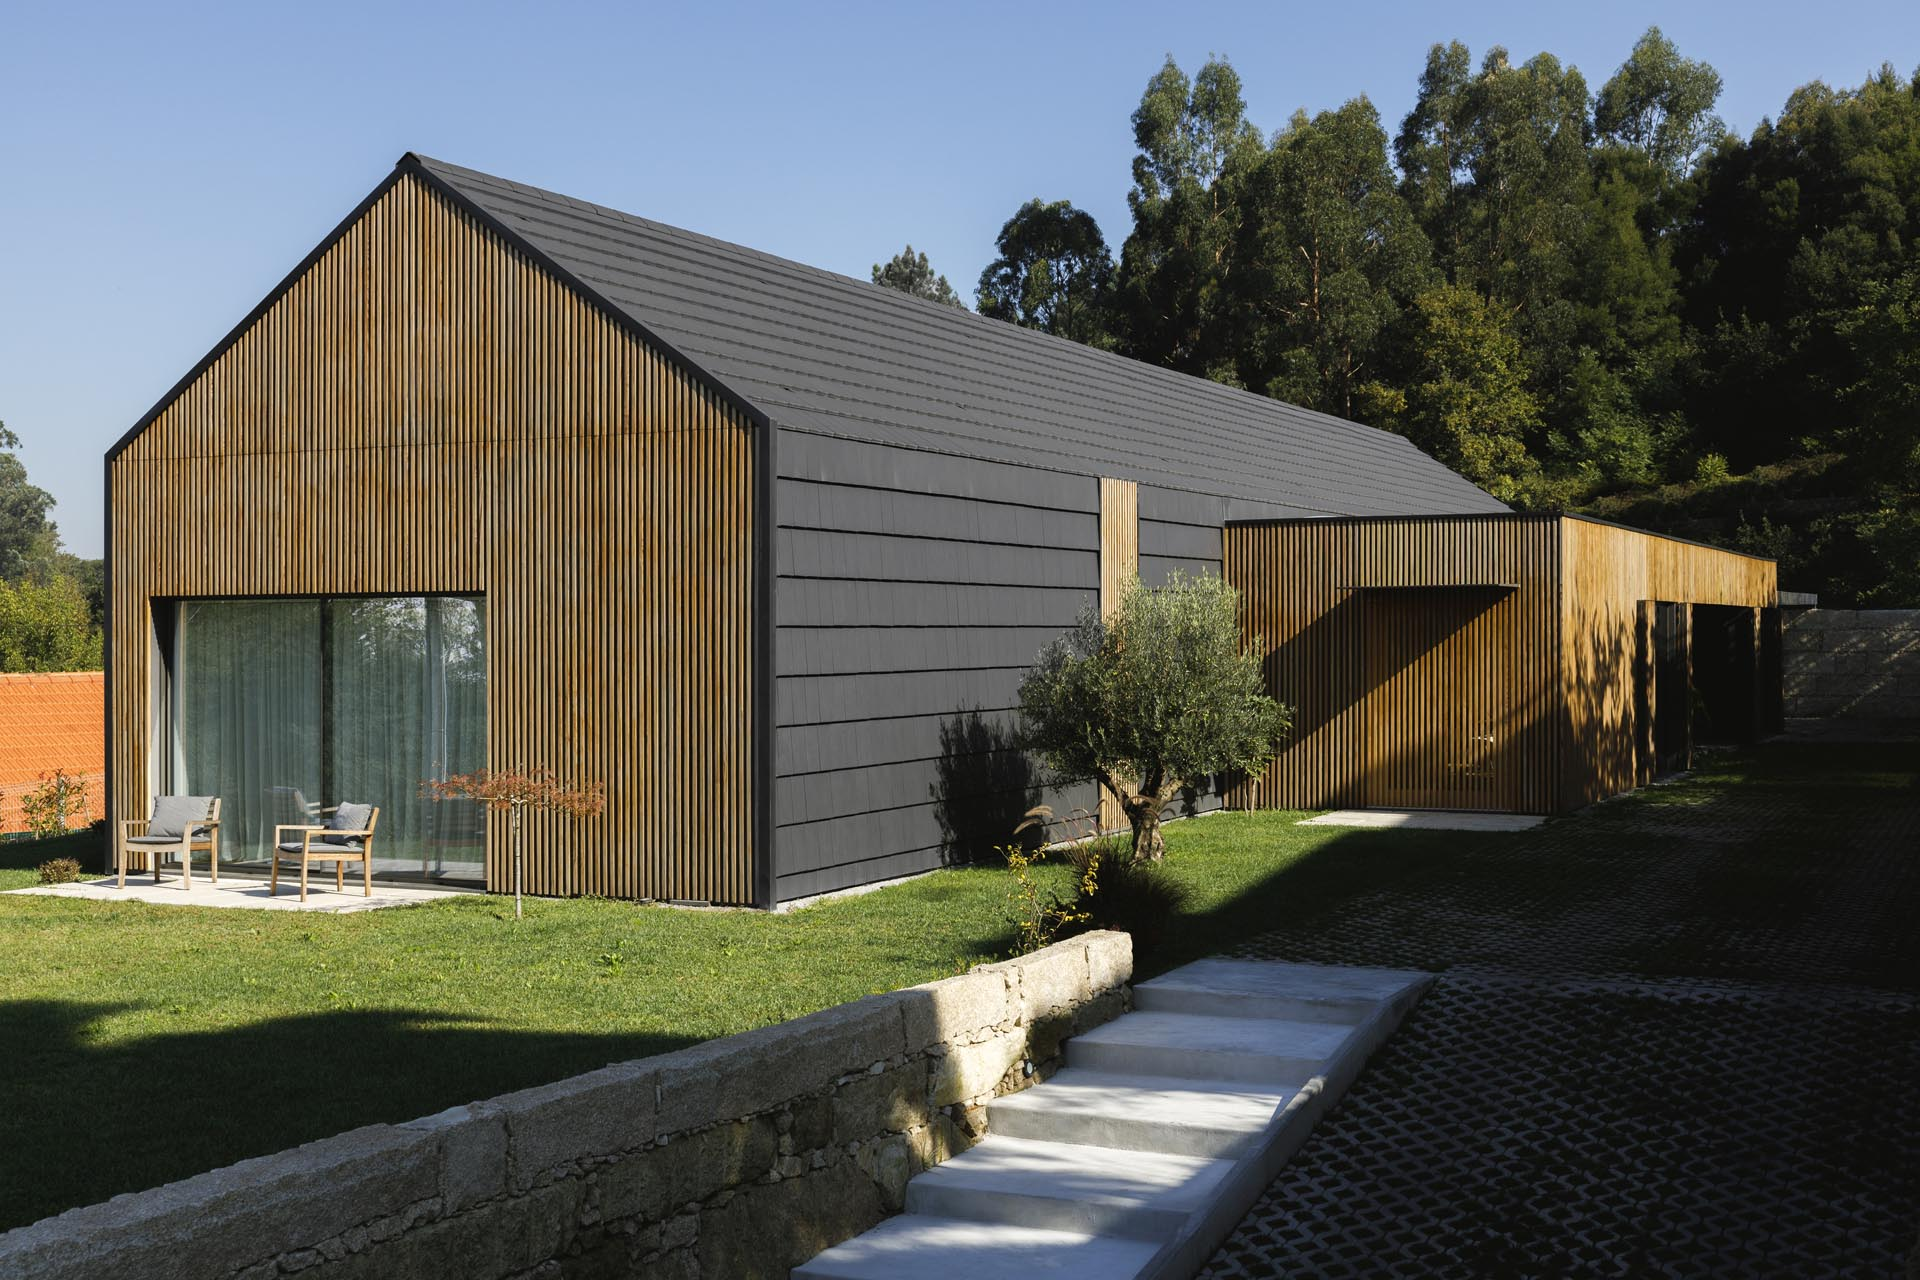 A modern black house with wood accents.